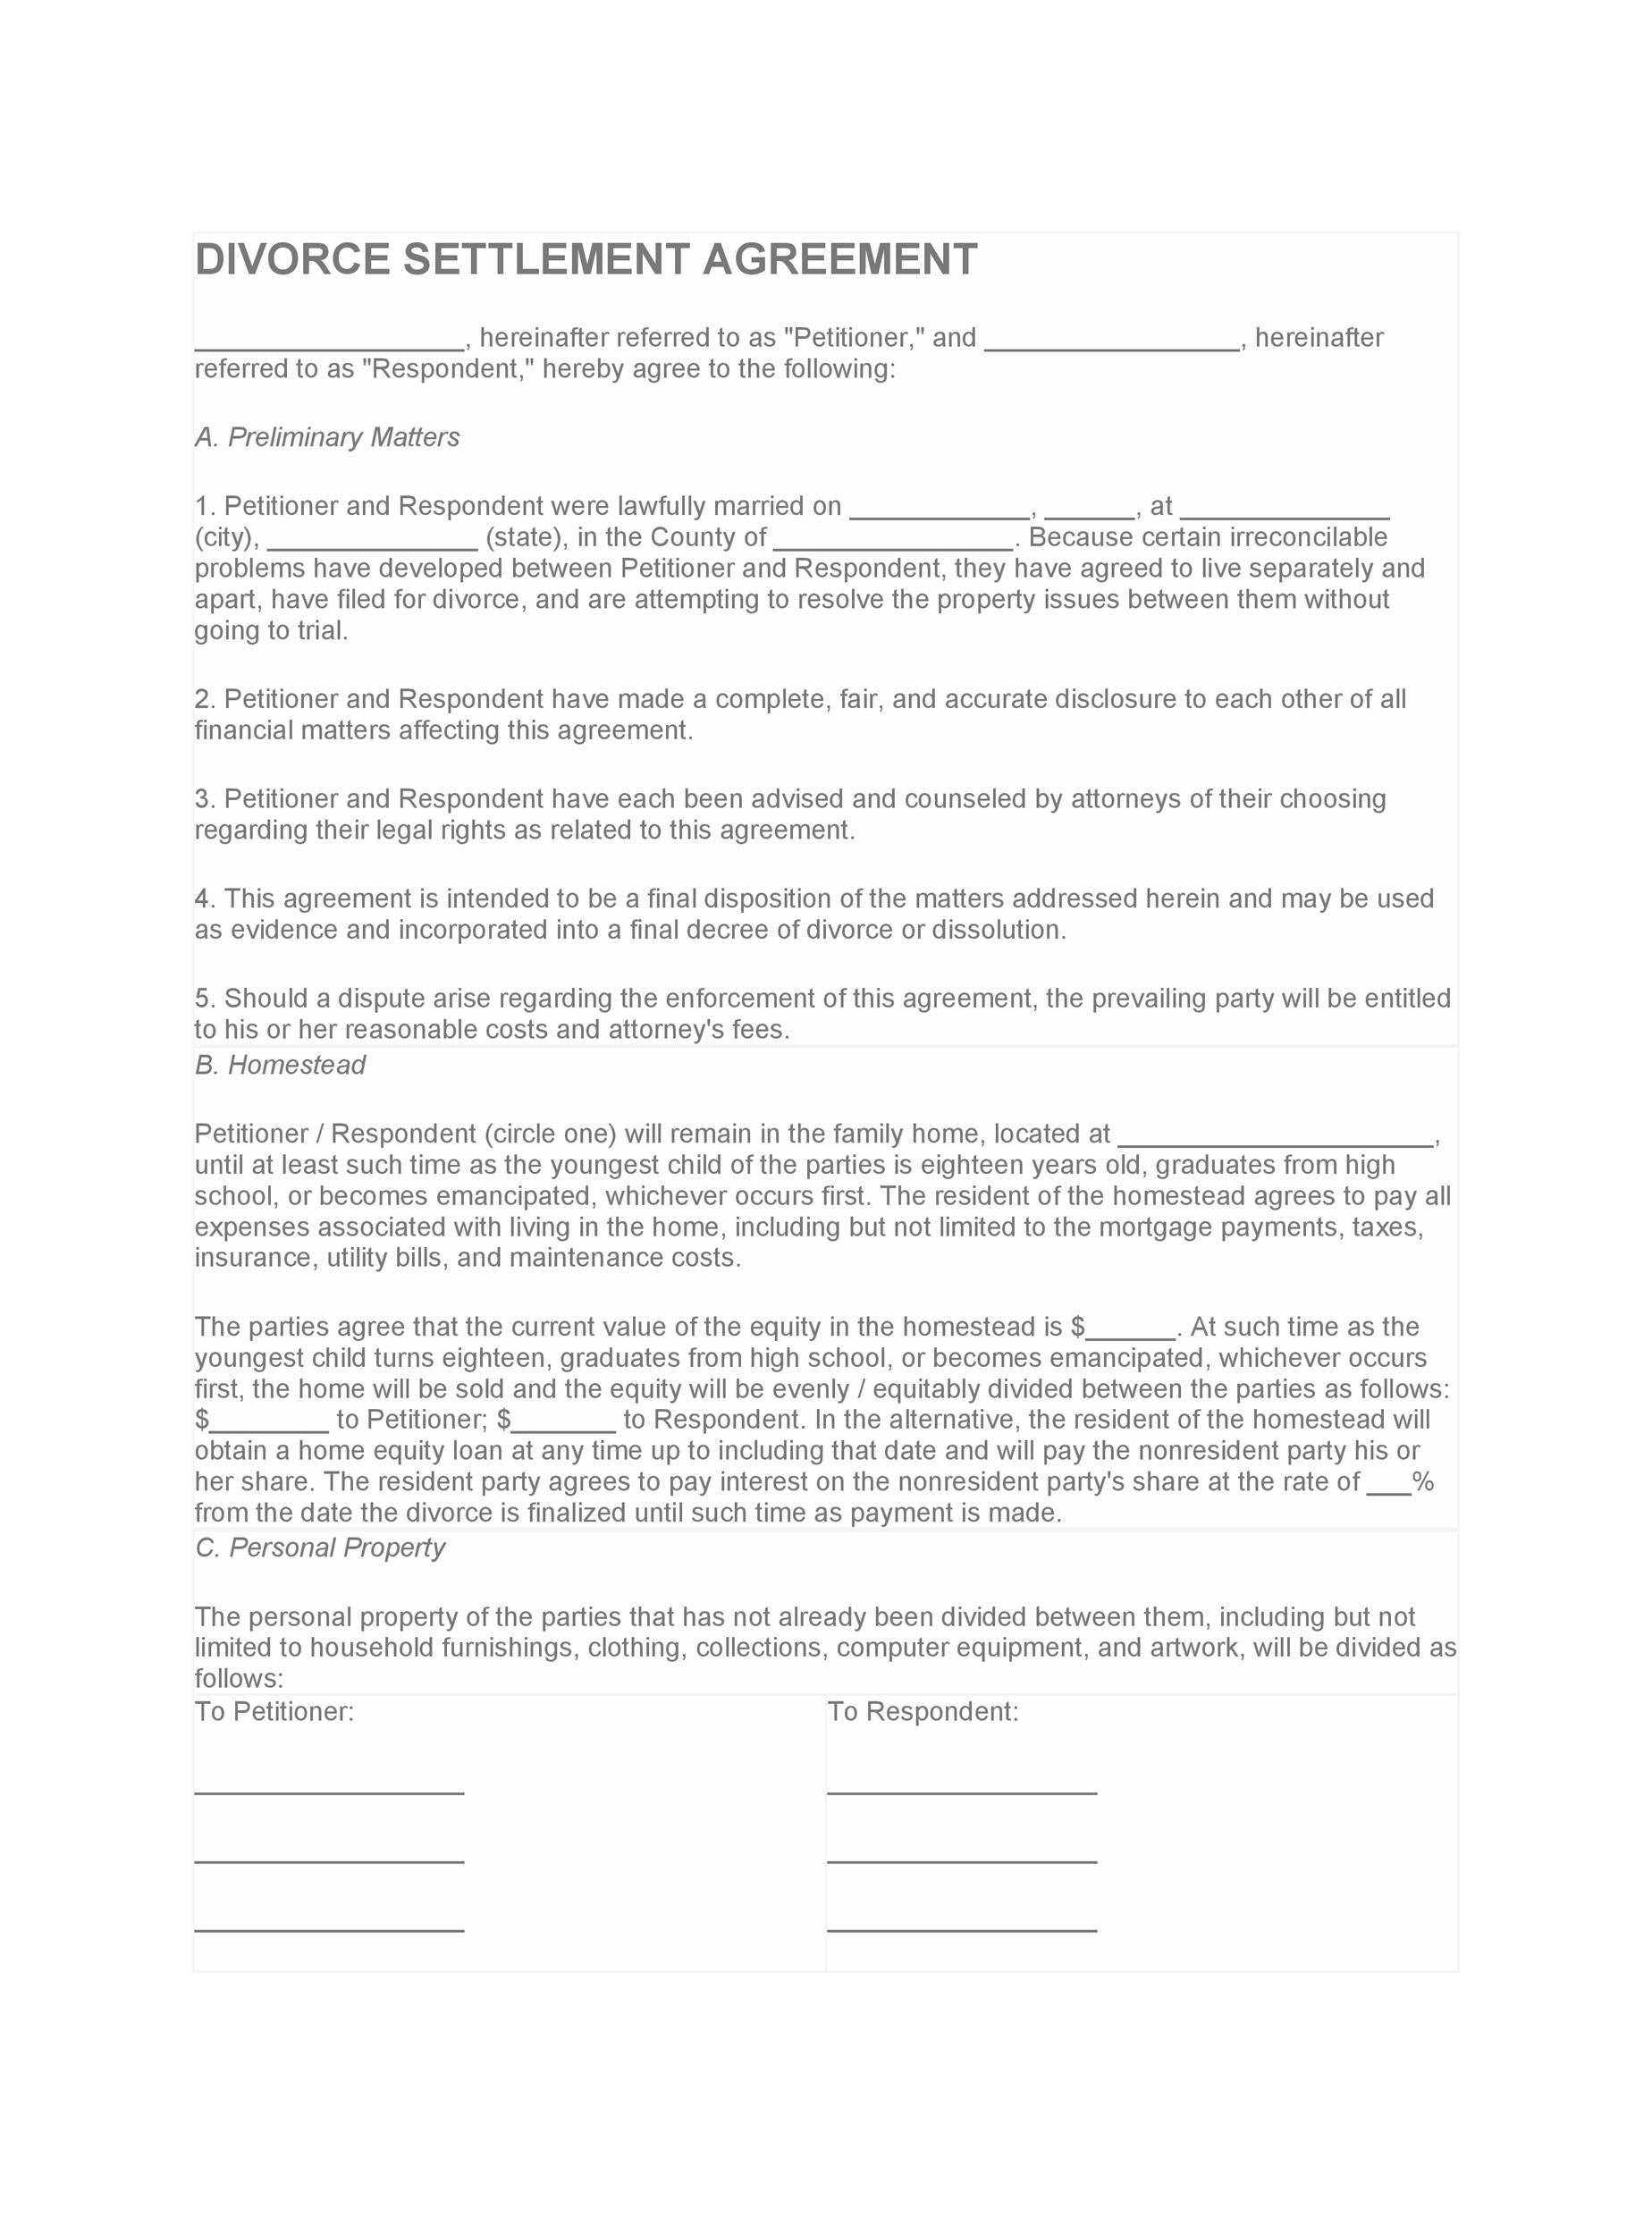 42 Divorce Settlement Agreement Templates 100 Free ᐅ